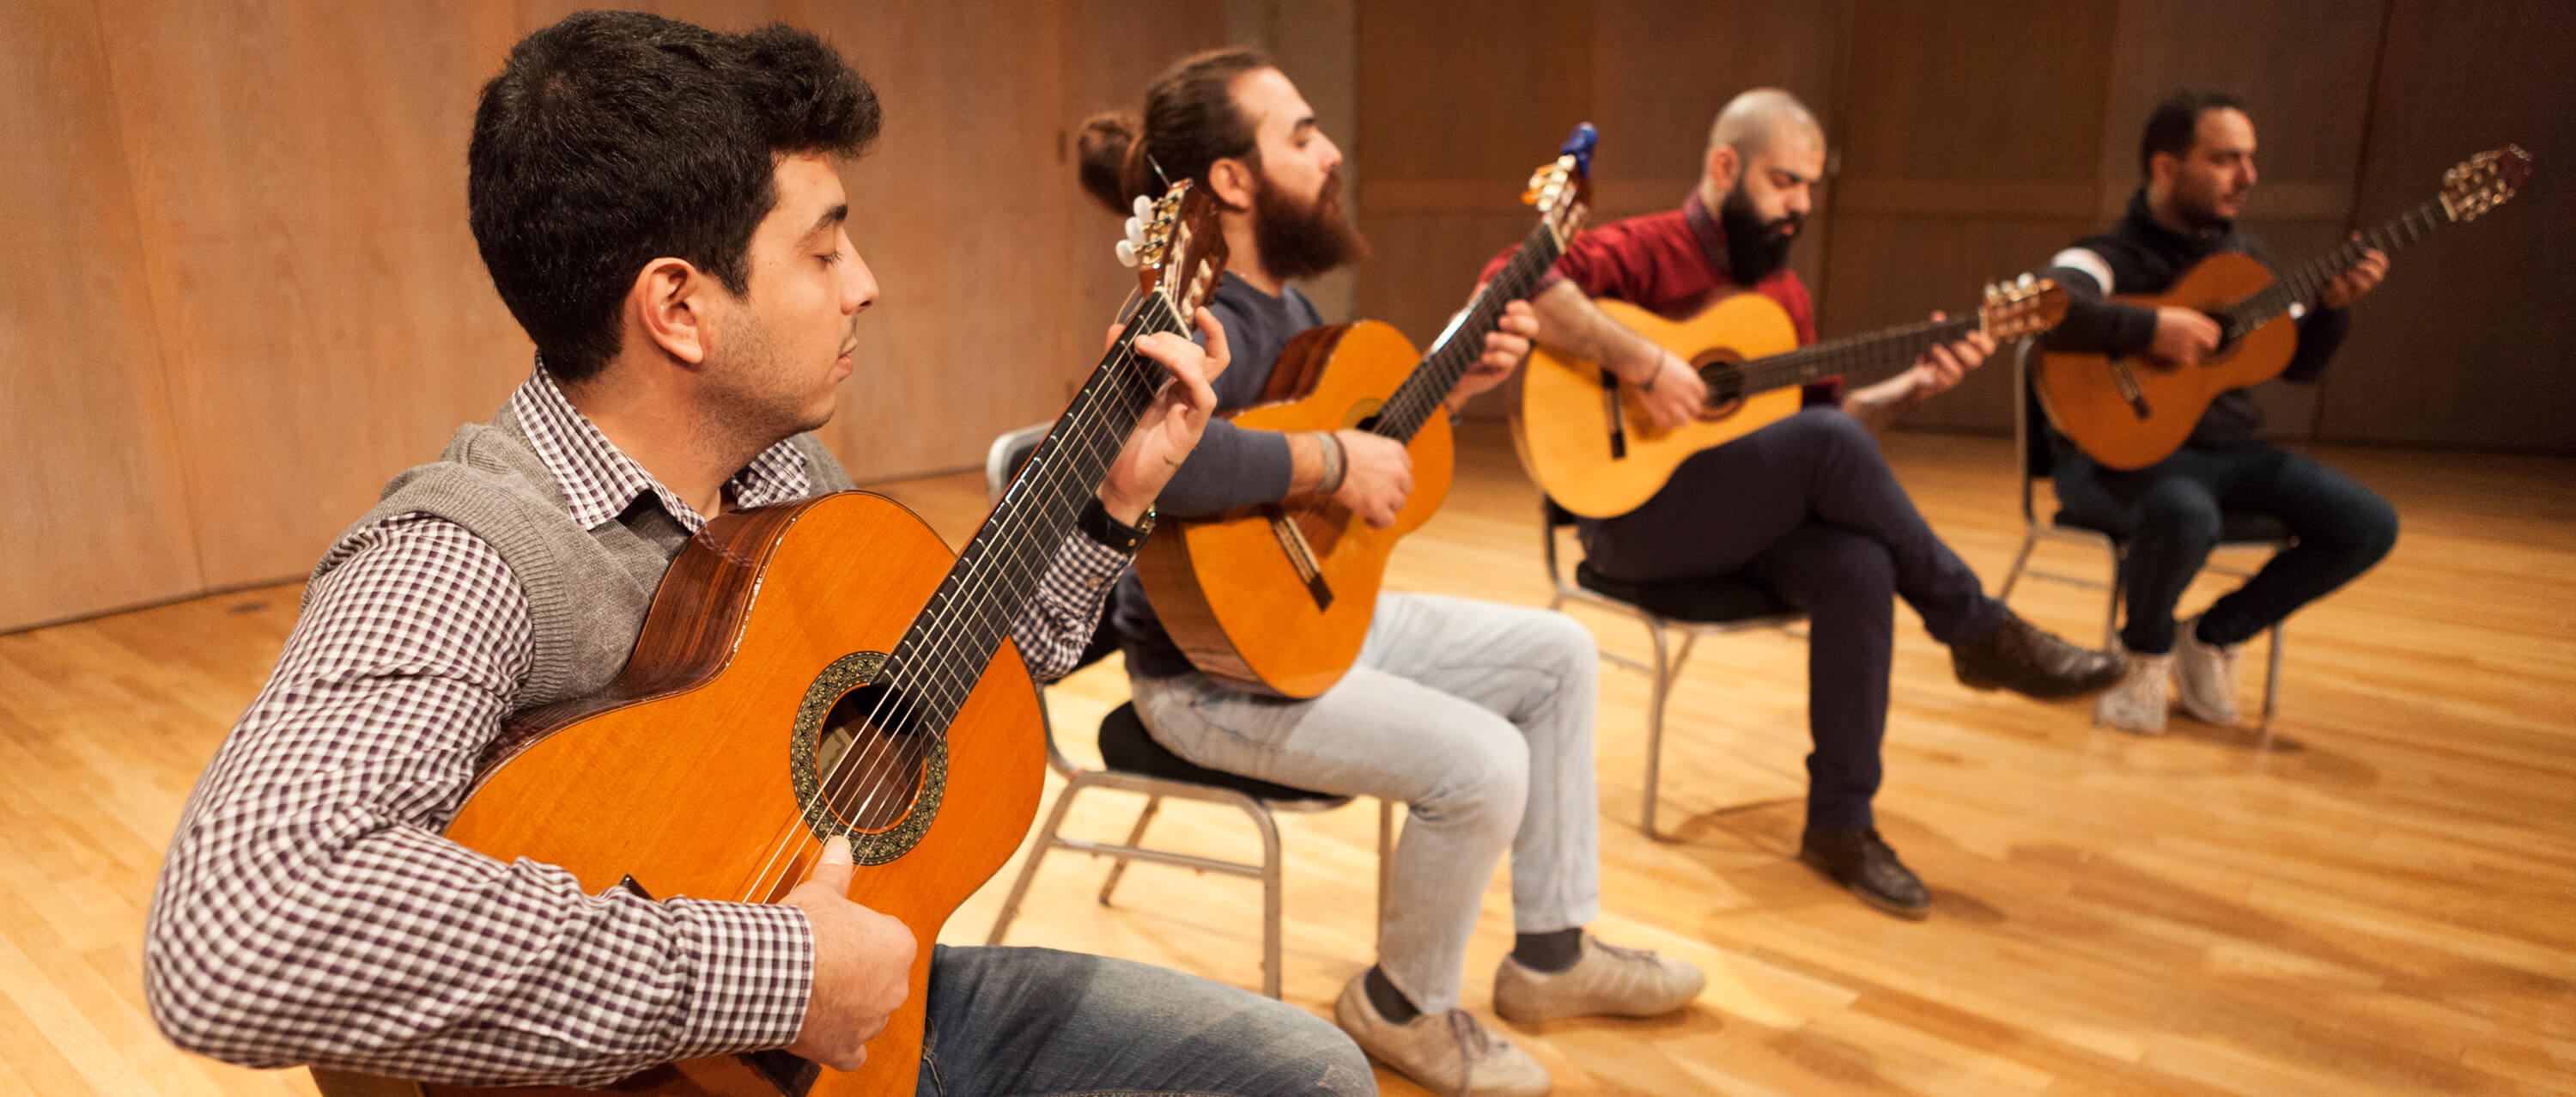 The Orontes Guitar Quartet with guitars in Damascus, Syria